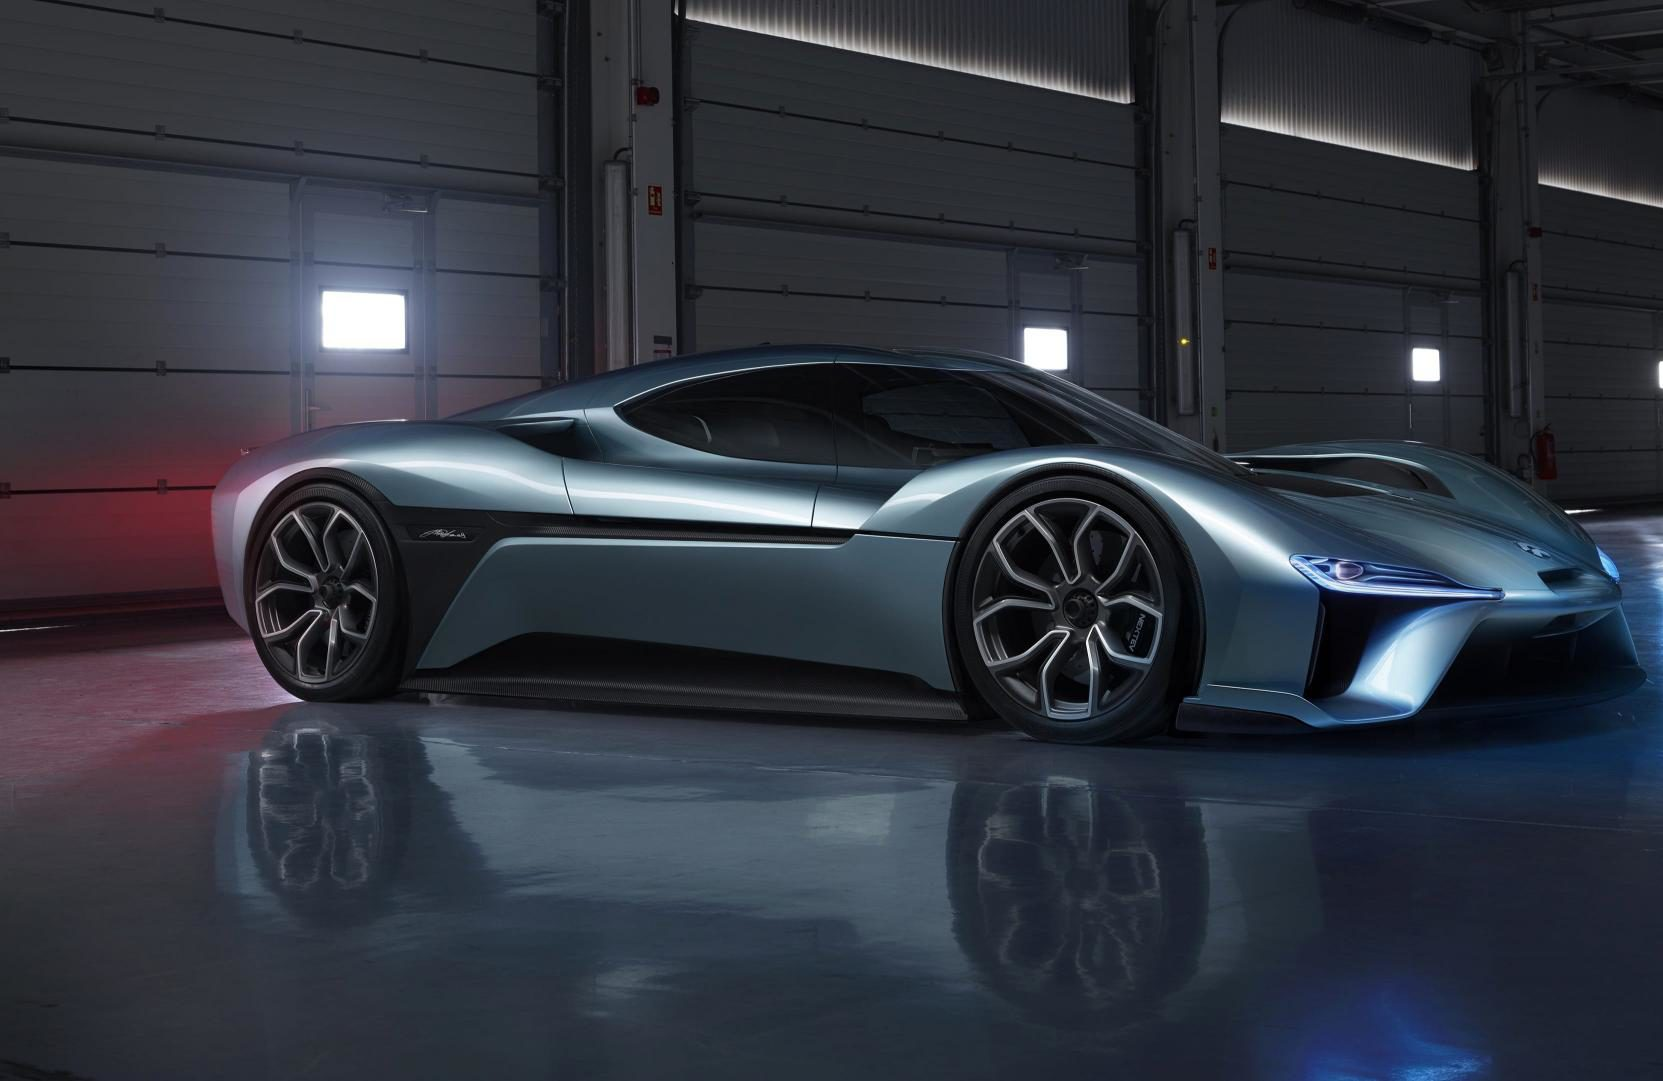 Neo EP9 Worlds Fastest Electric Hypercar